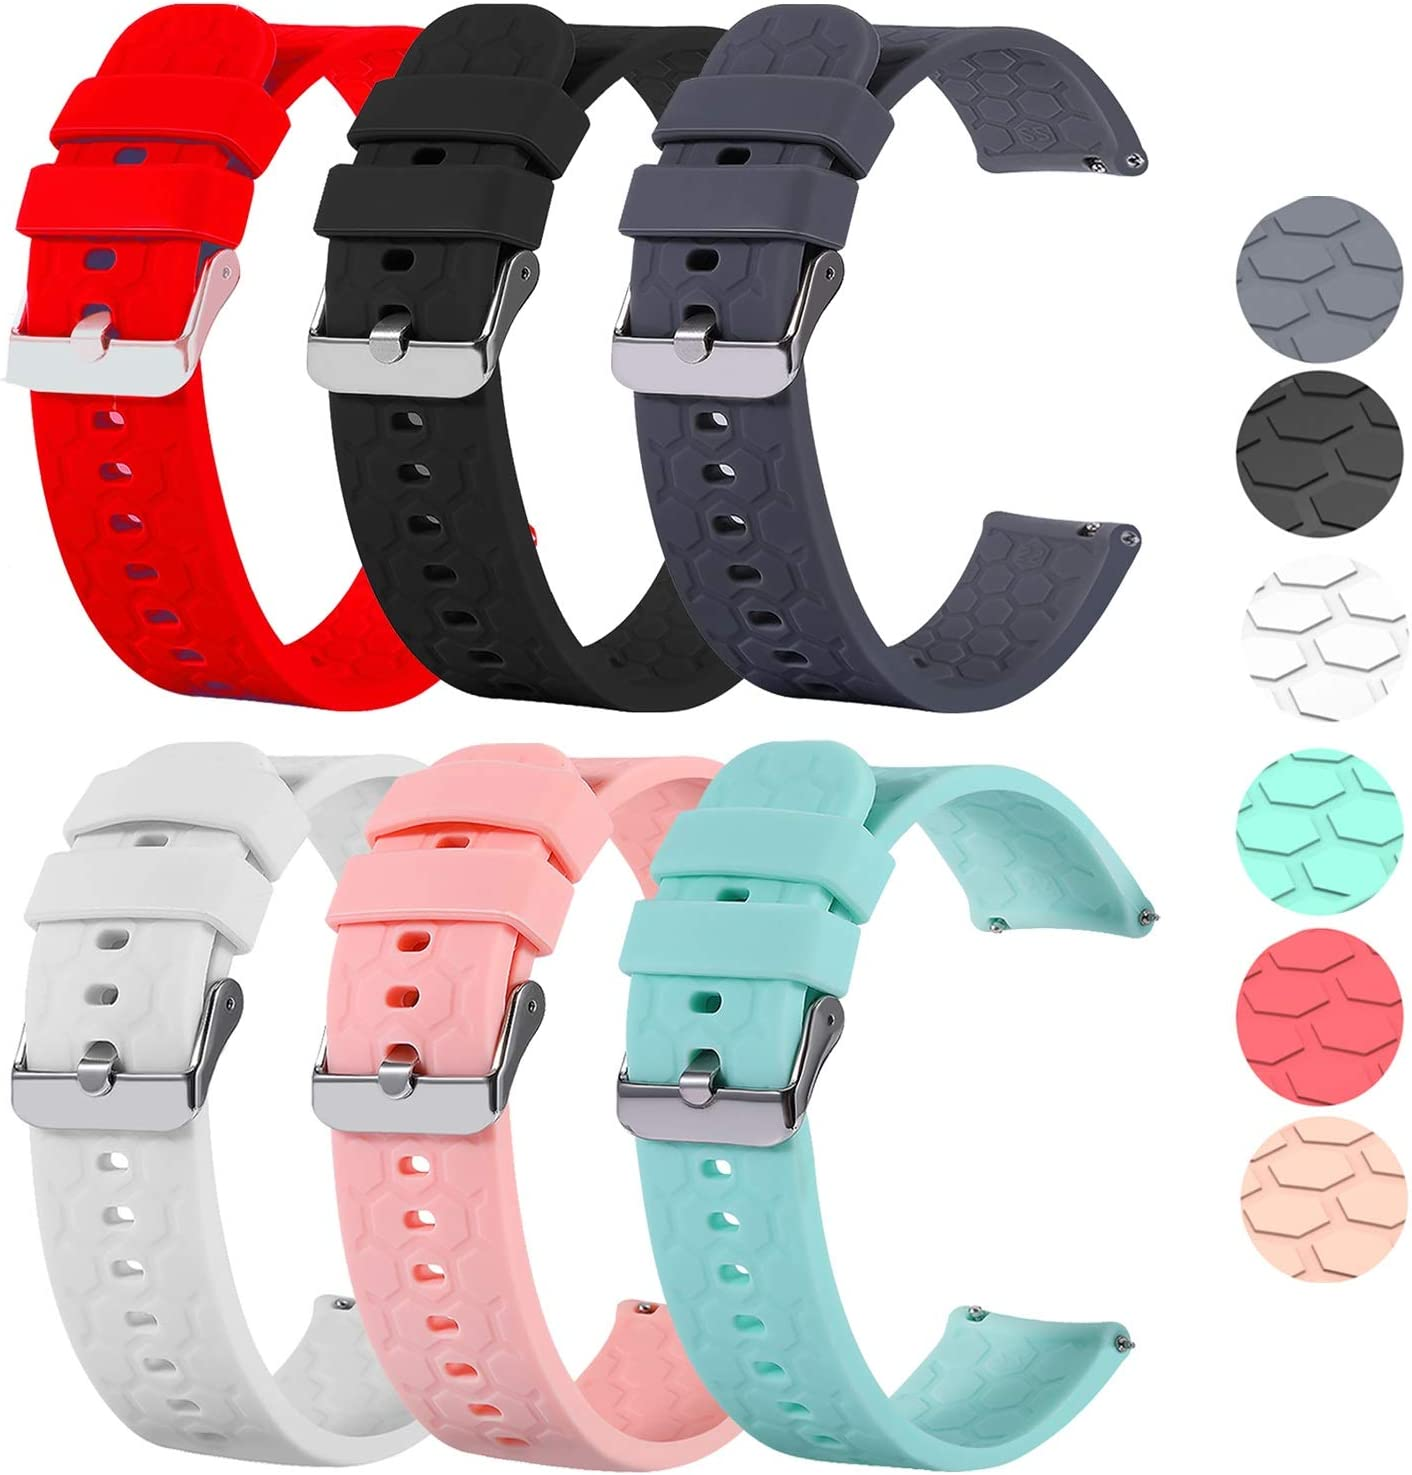 ECSEM Soft Silicone Smart Watch Replacement Popular standard Compati Limited price sale Bands Straps